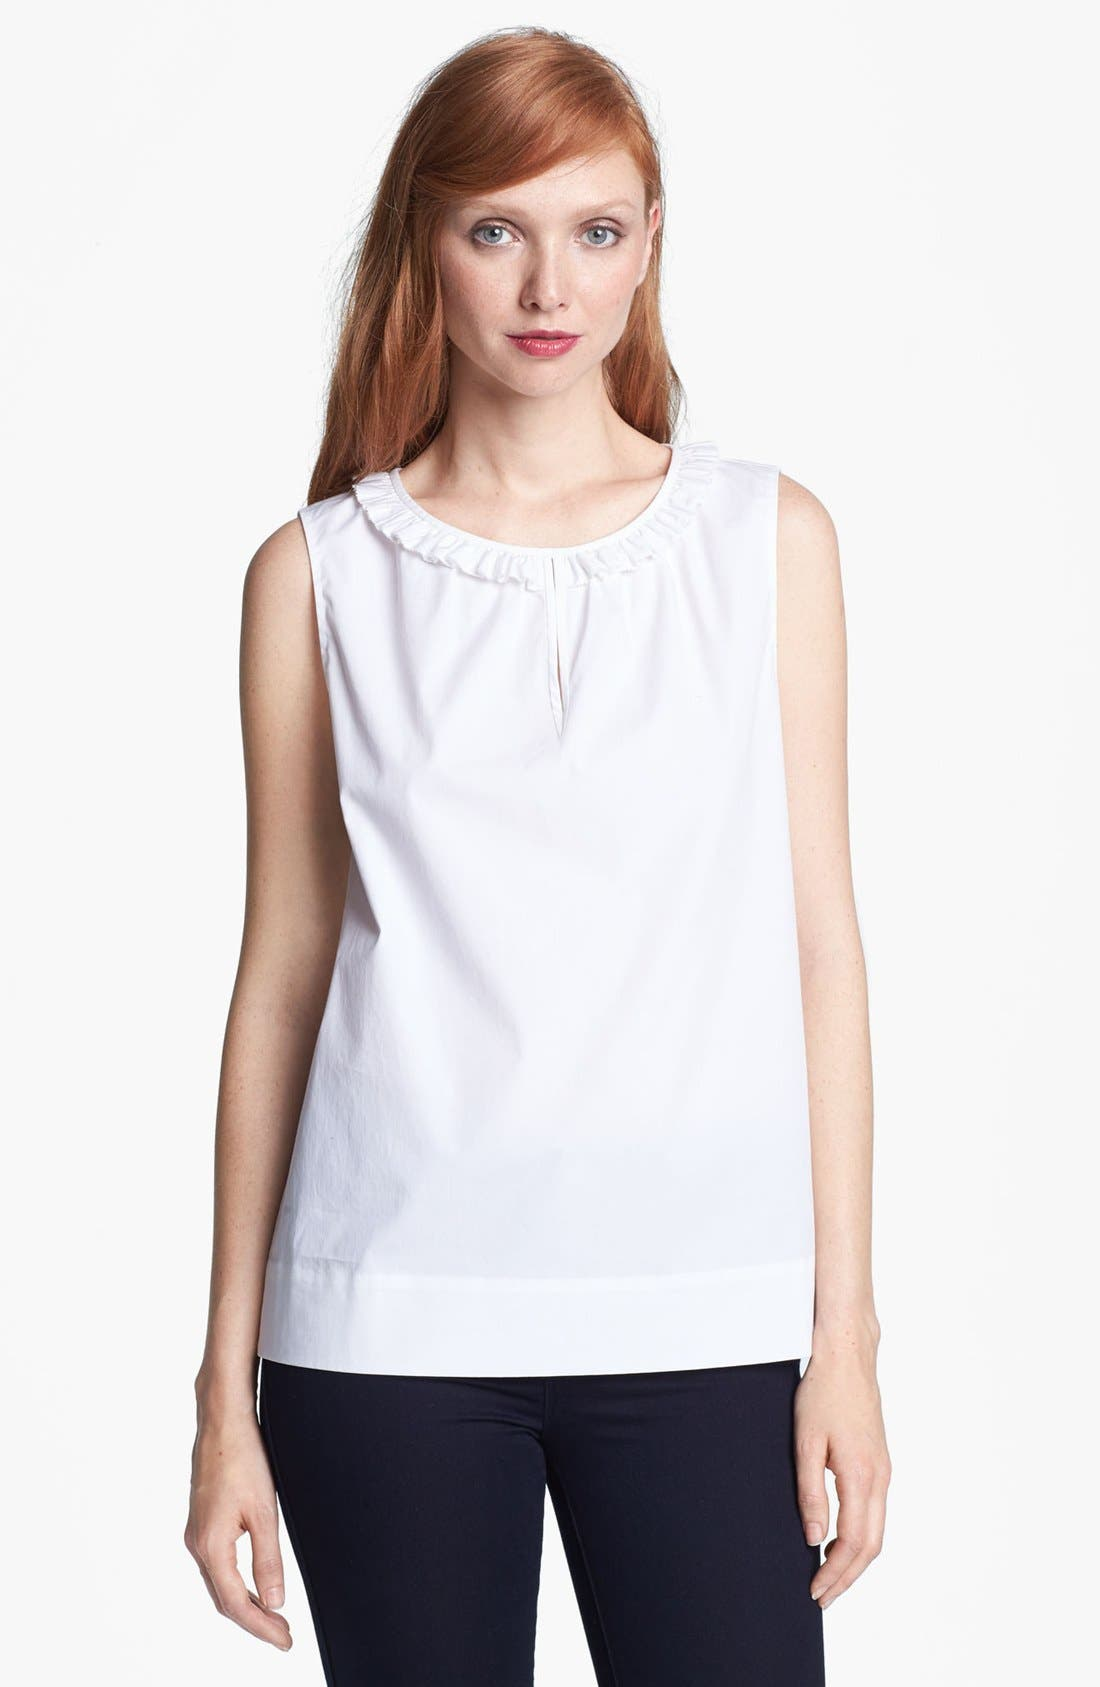 Alternate Image 1 Selected - kate spade new york 'estella' stretch cotton top